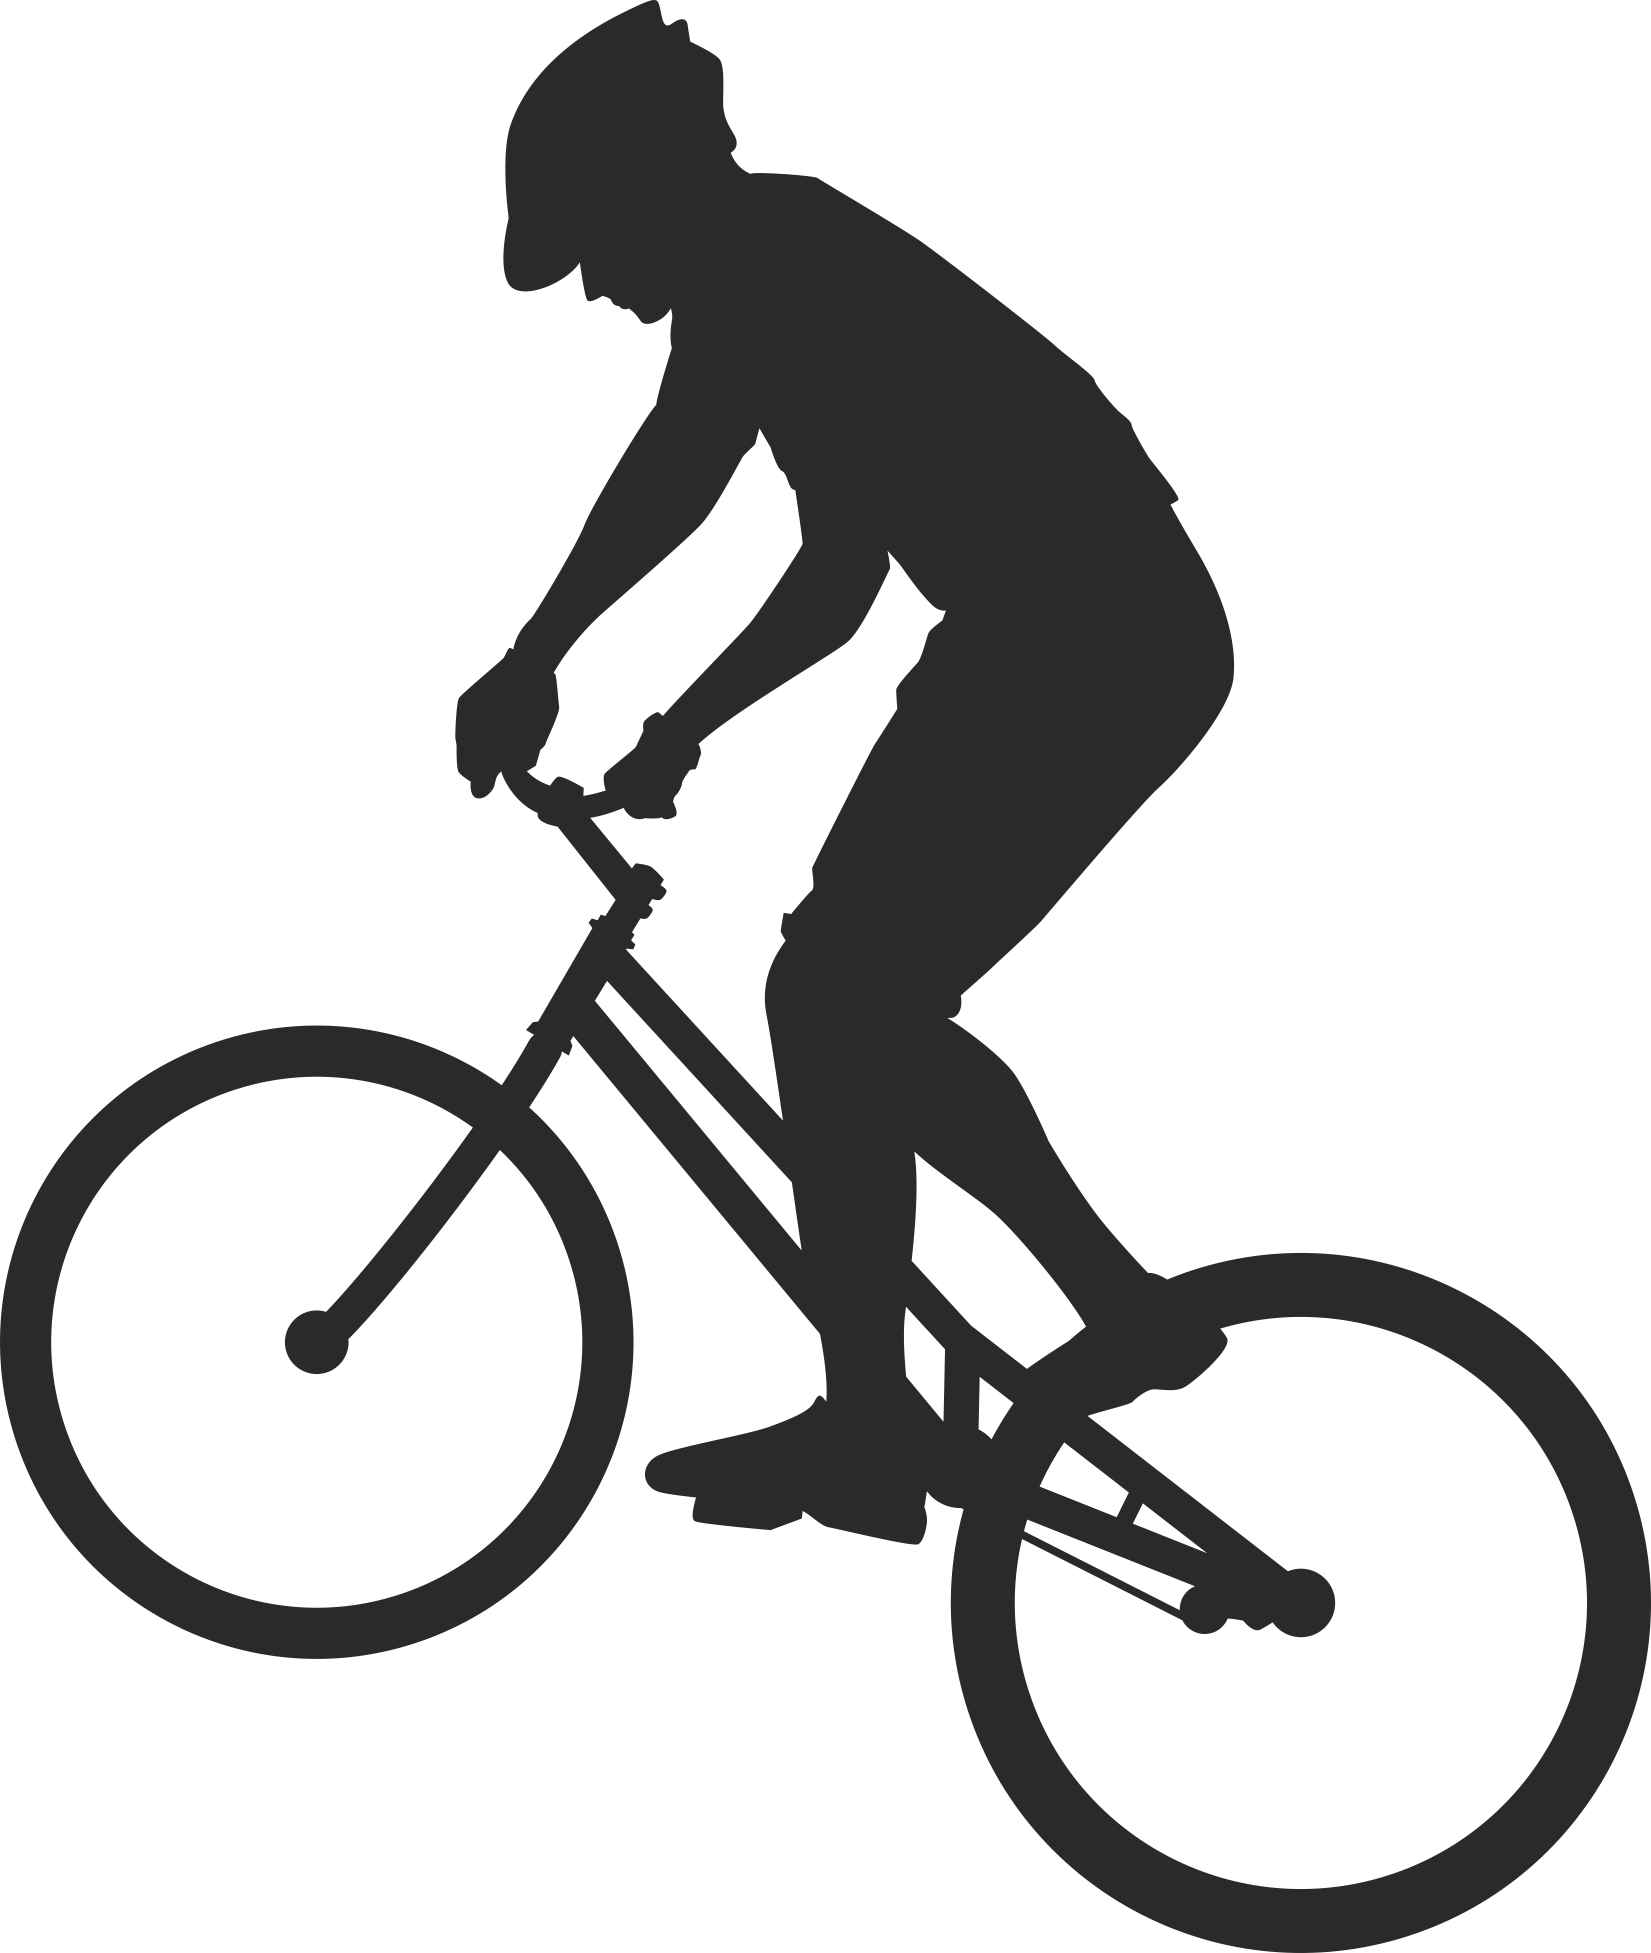 Silhouette Cyclist Collection Of Bicycle 04 Free DXF File